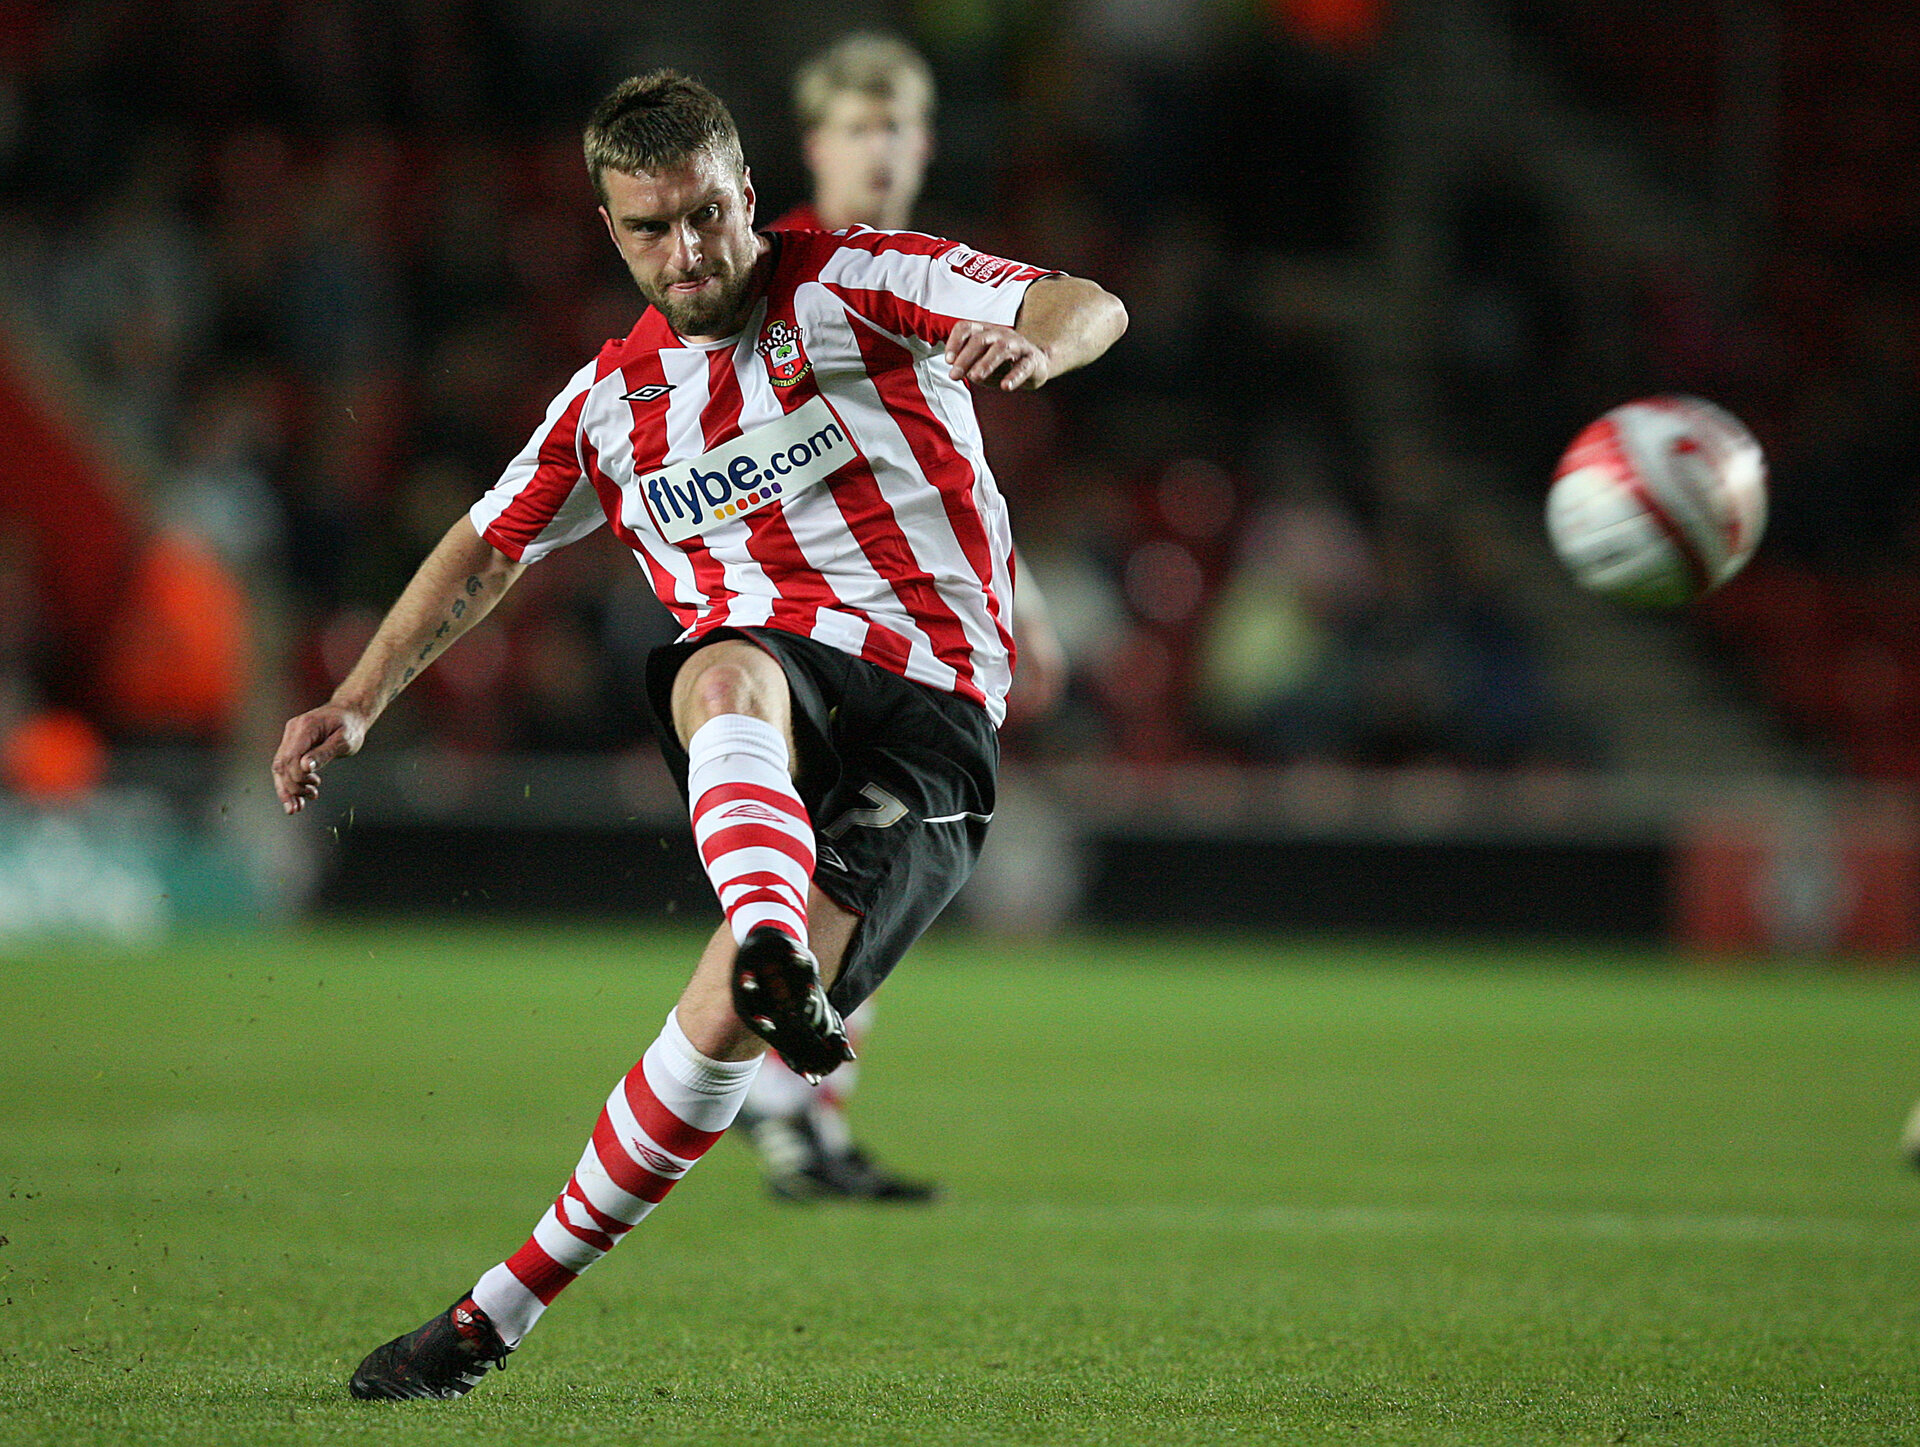 SOUTHAMPTON, ENGLAND - APRIL 20:   Rickie Lambert of Southampton in action during the Coca-Cola League One match between Southampton and Oldham Athletic at St. Mary's Stadium on April 20, 2010 in Southampton, England.  (Photo by Jan Kruger/Getty Images)